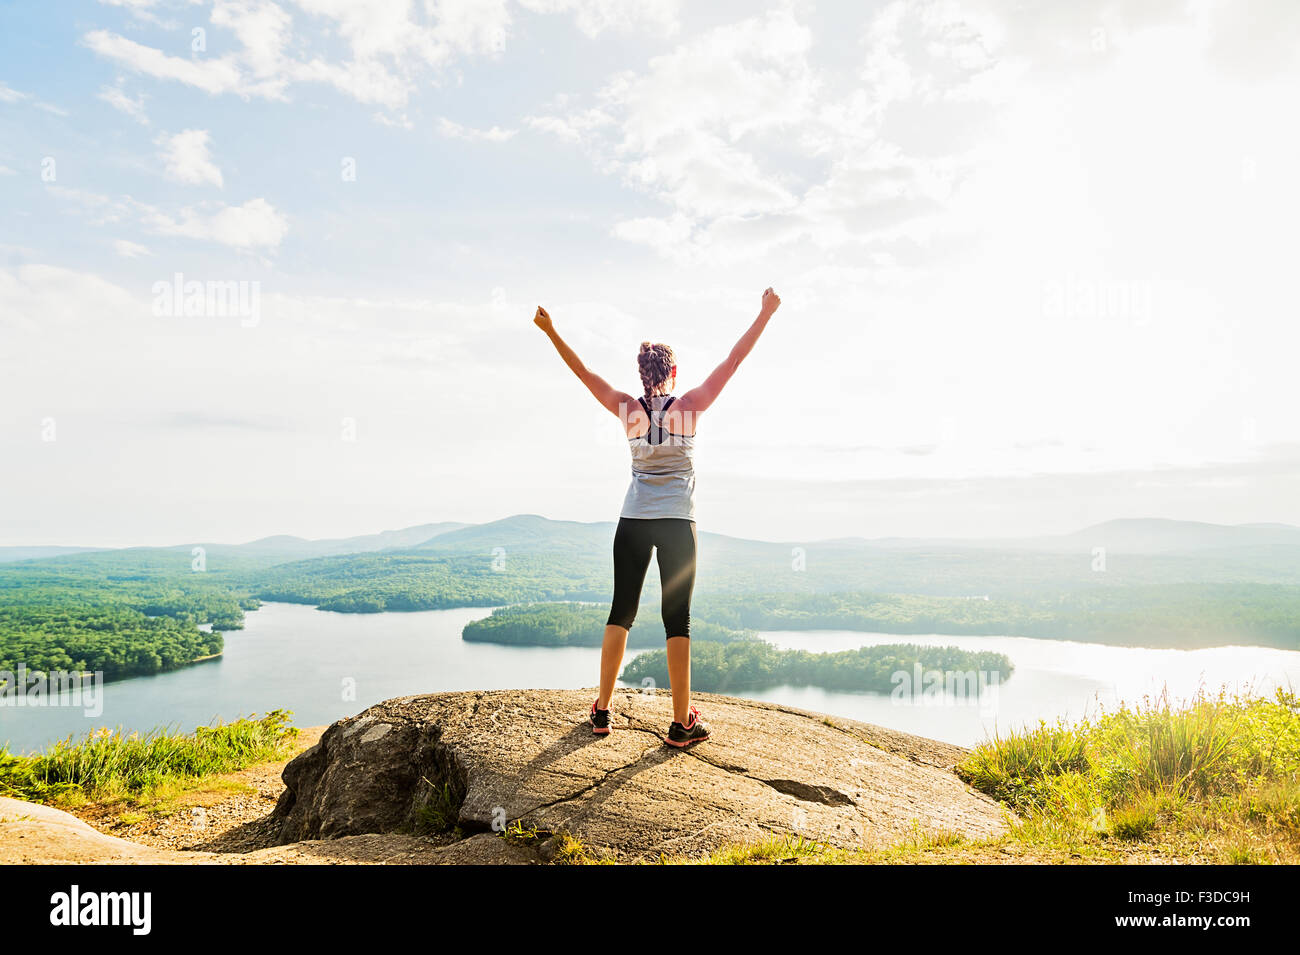 young woman standing on top of mountain with outstretched arms rear